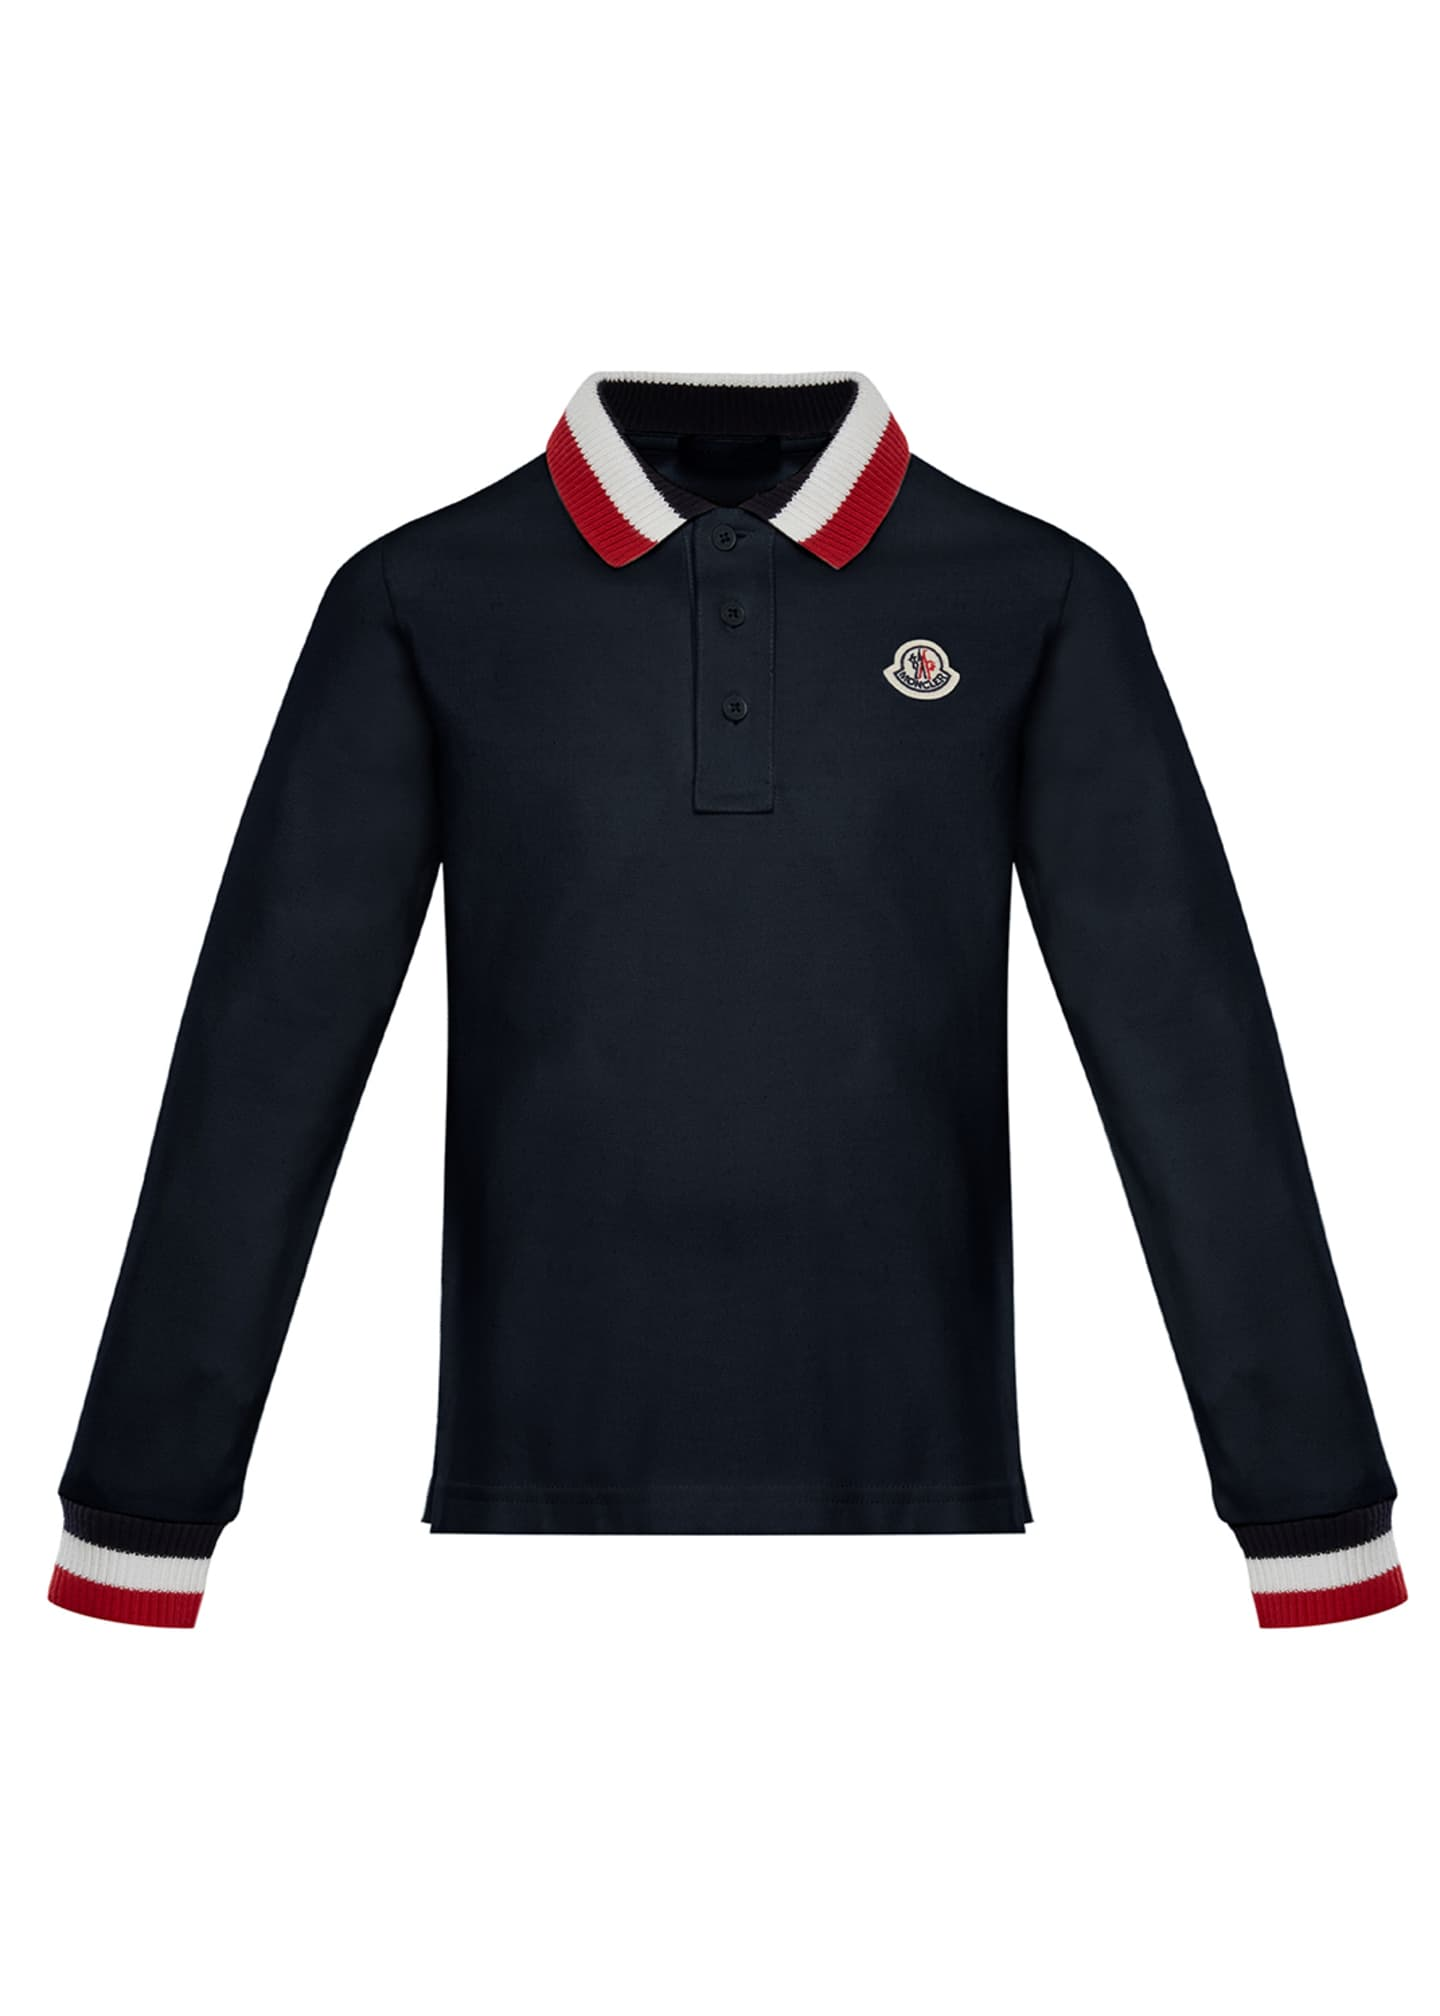 Moncler Long-Sleeve Polo Half-Button Shirt, Navy, Size 8-14